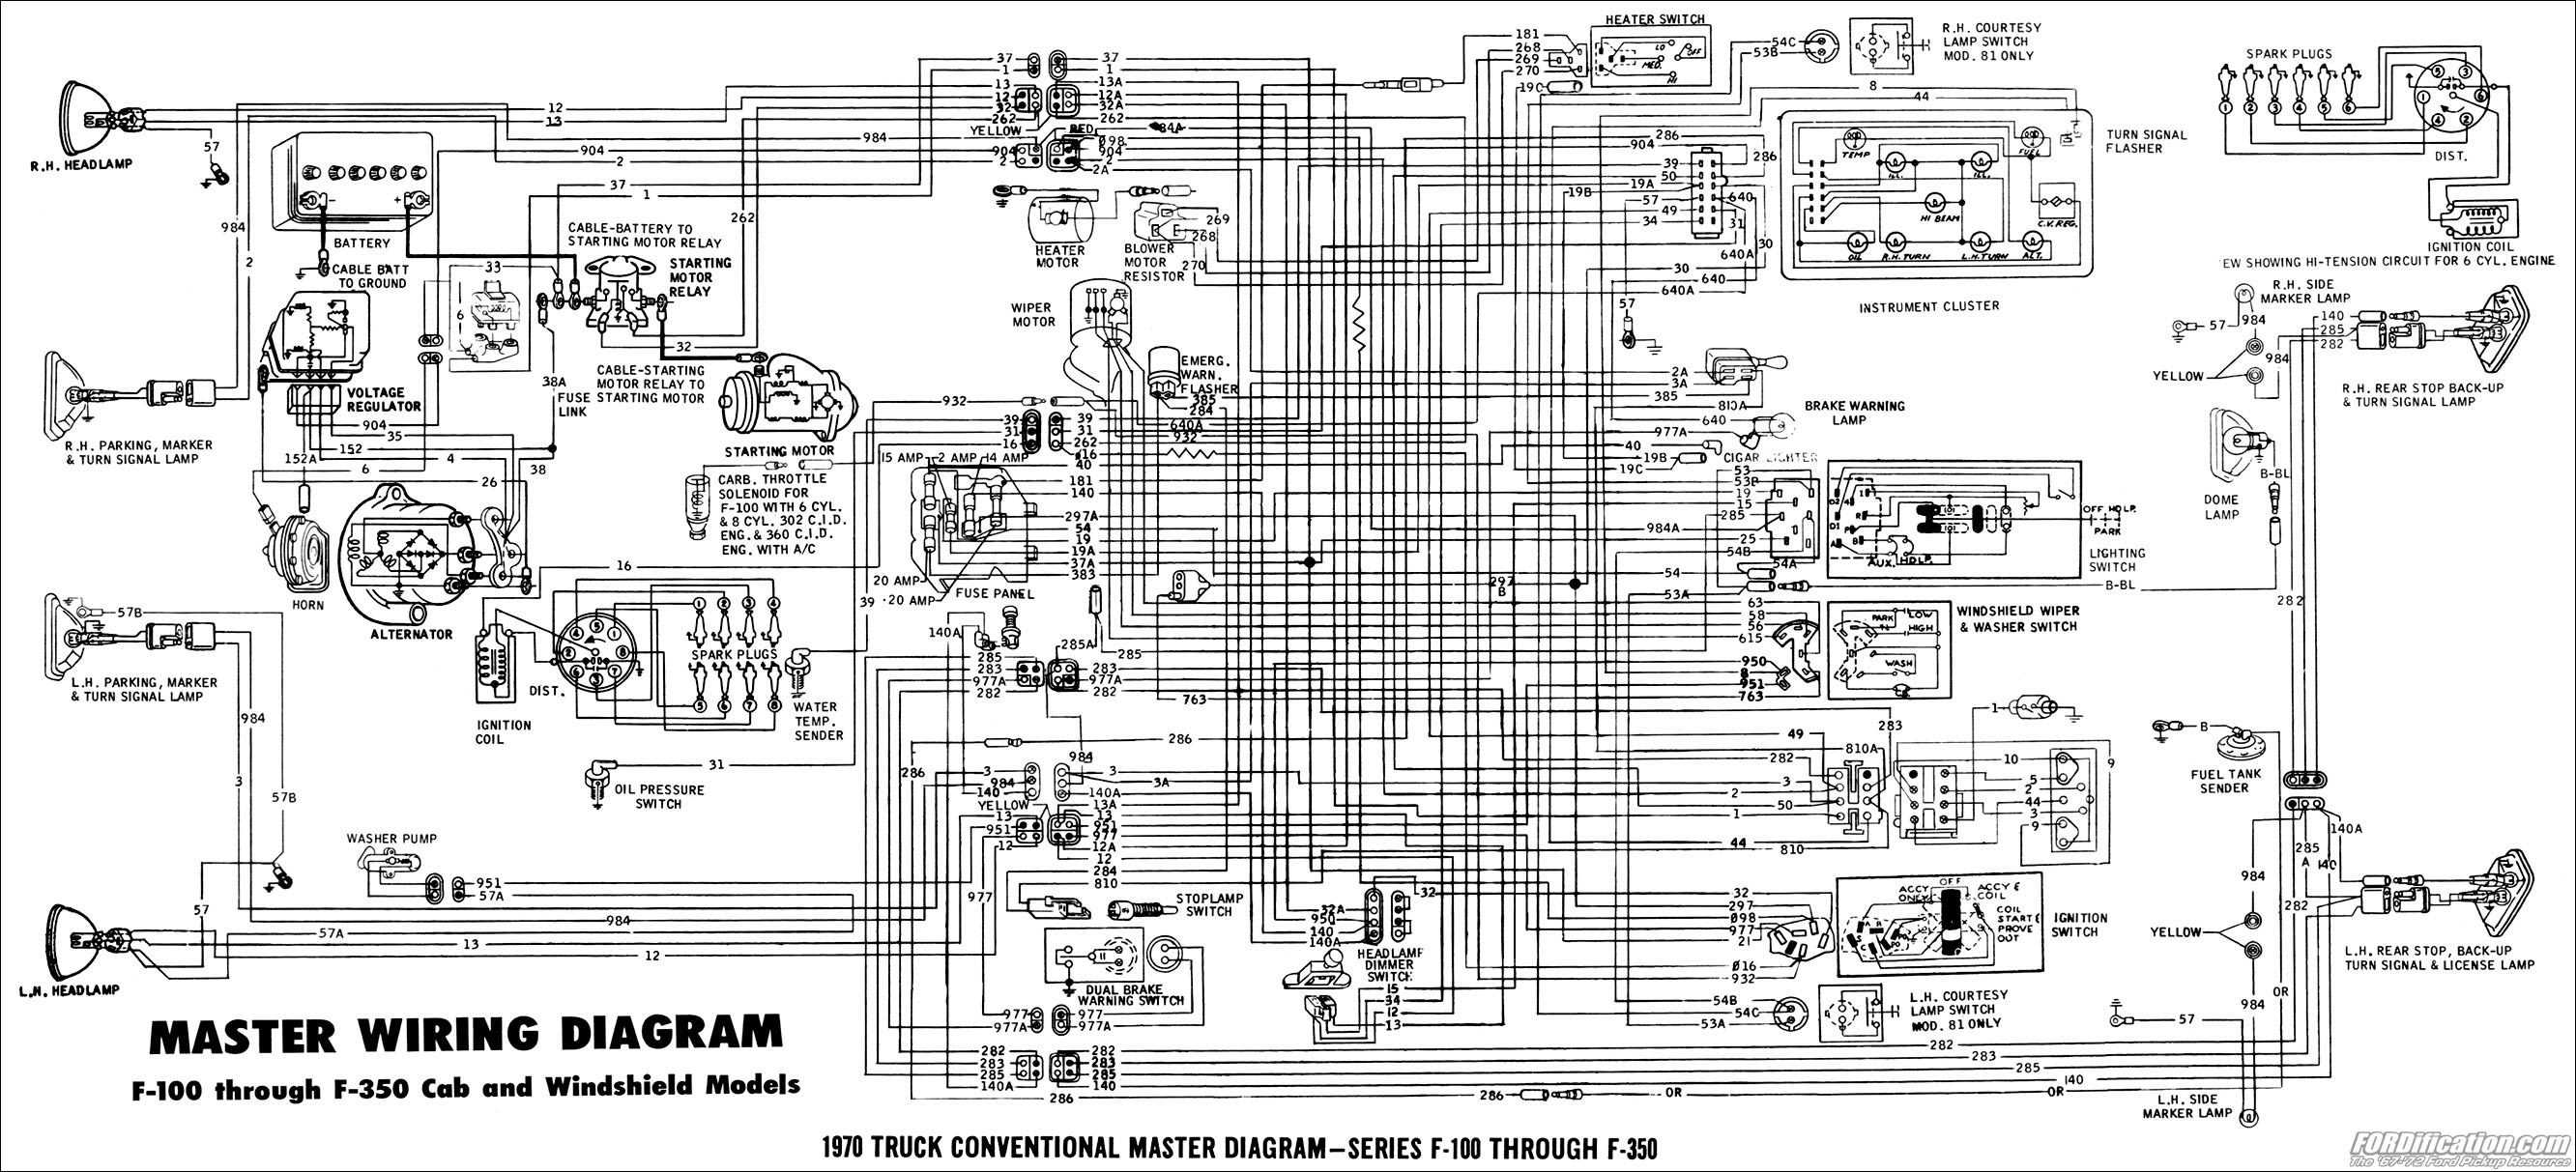 97 ford f 350 headlight switch wiring diagram  | 944 x 675